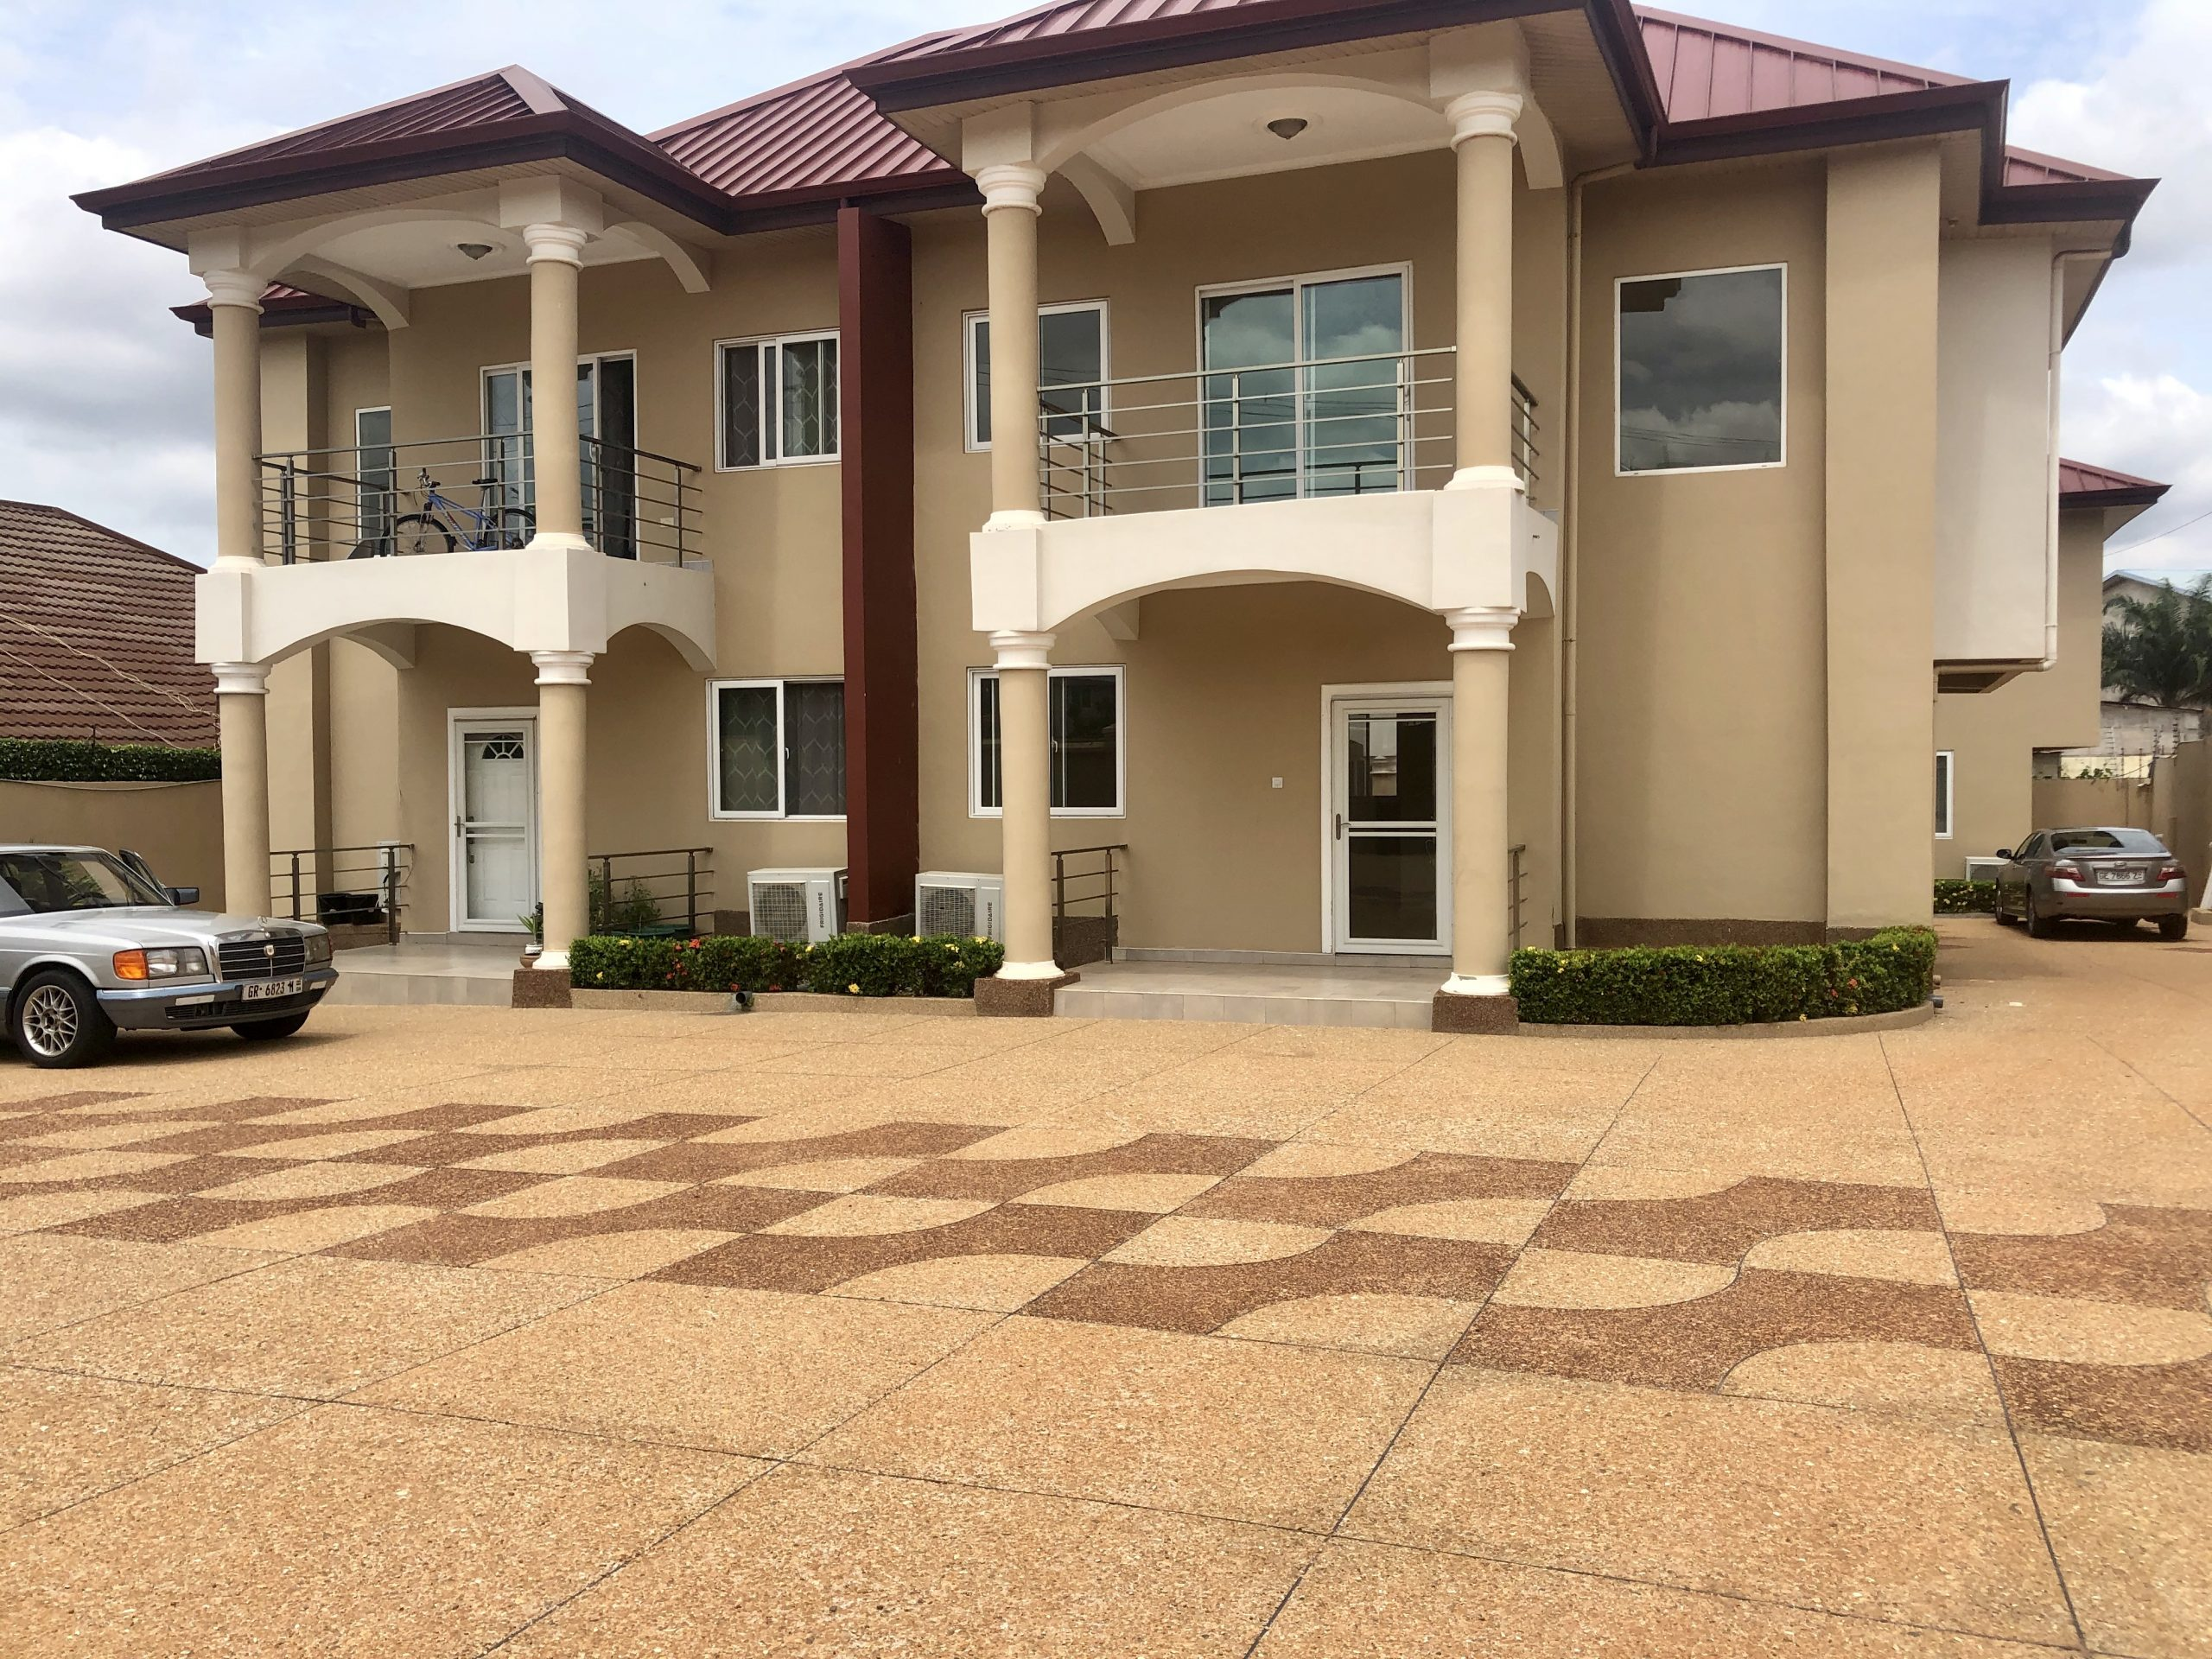 2 Bedroom Apartment For Rent in East Airport, Accra